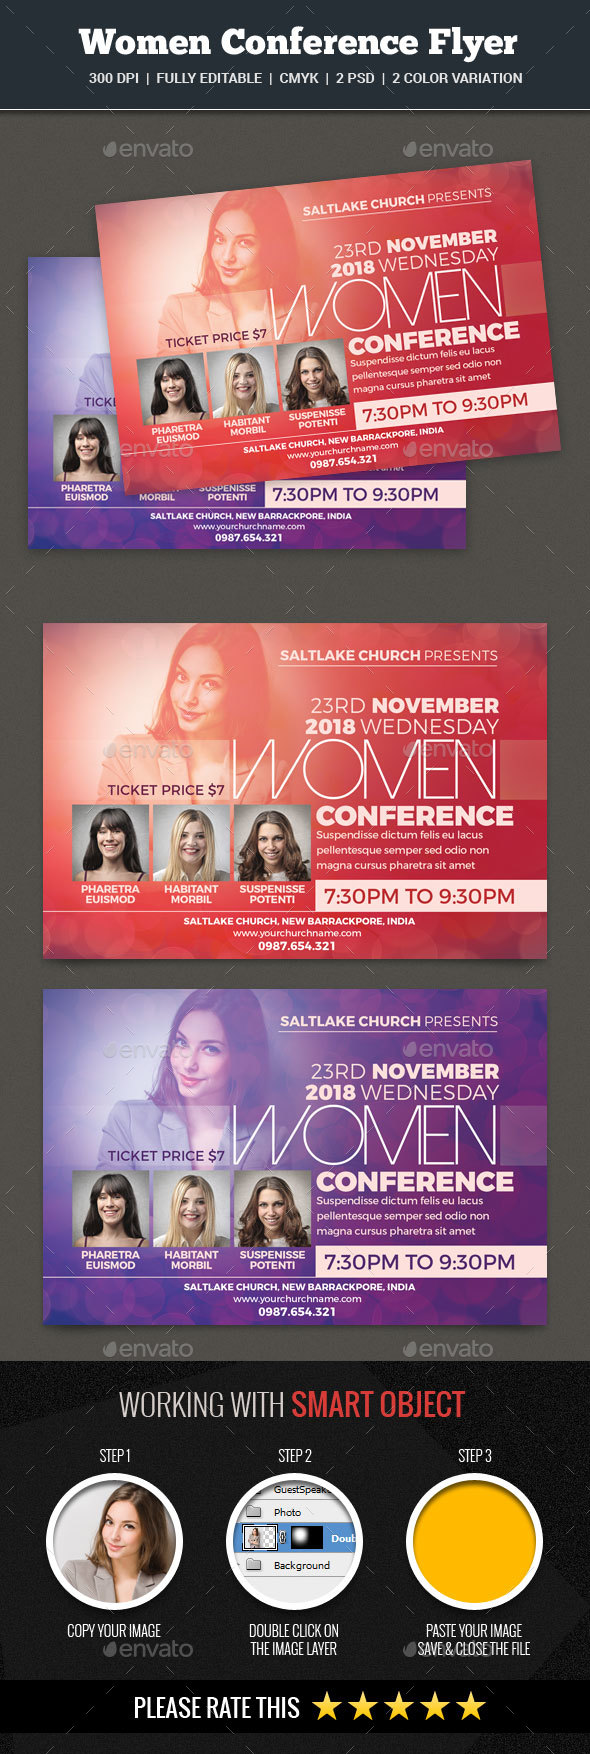 Women's Conference Flyer - Church Flyers